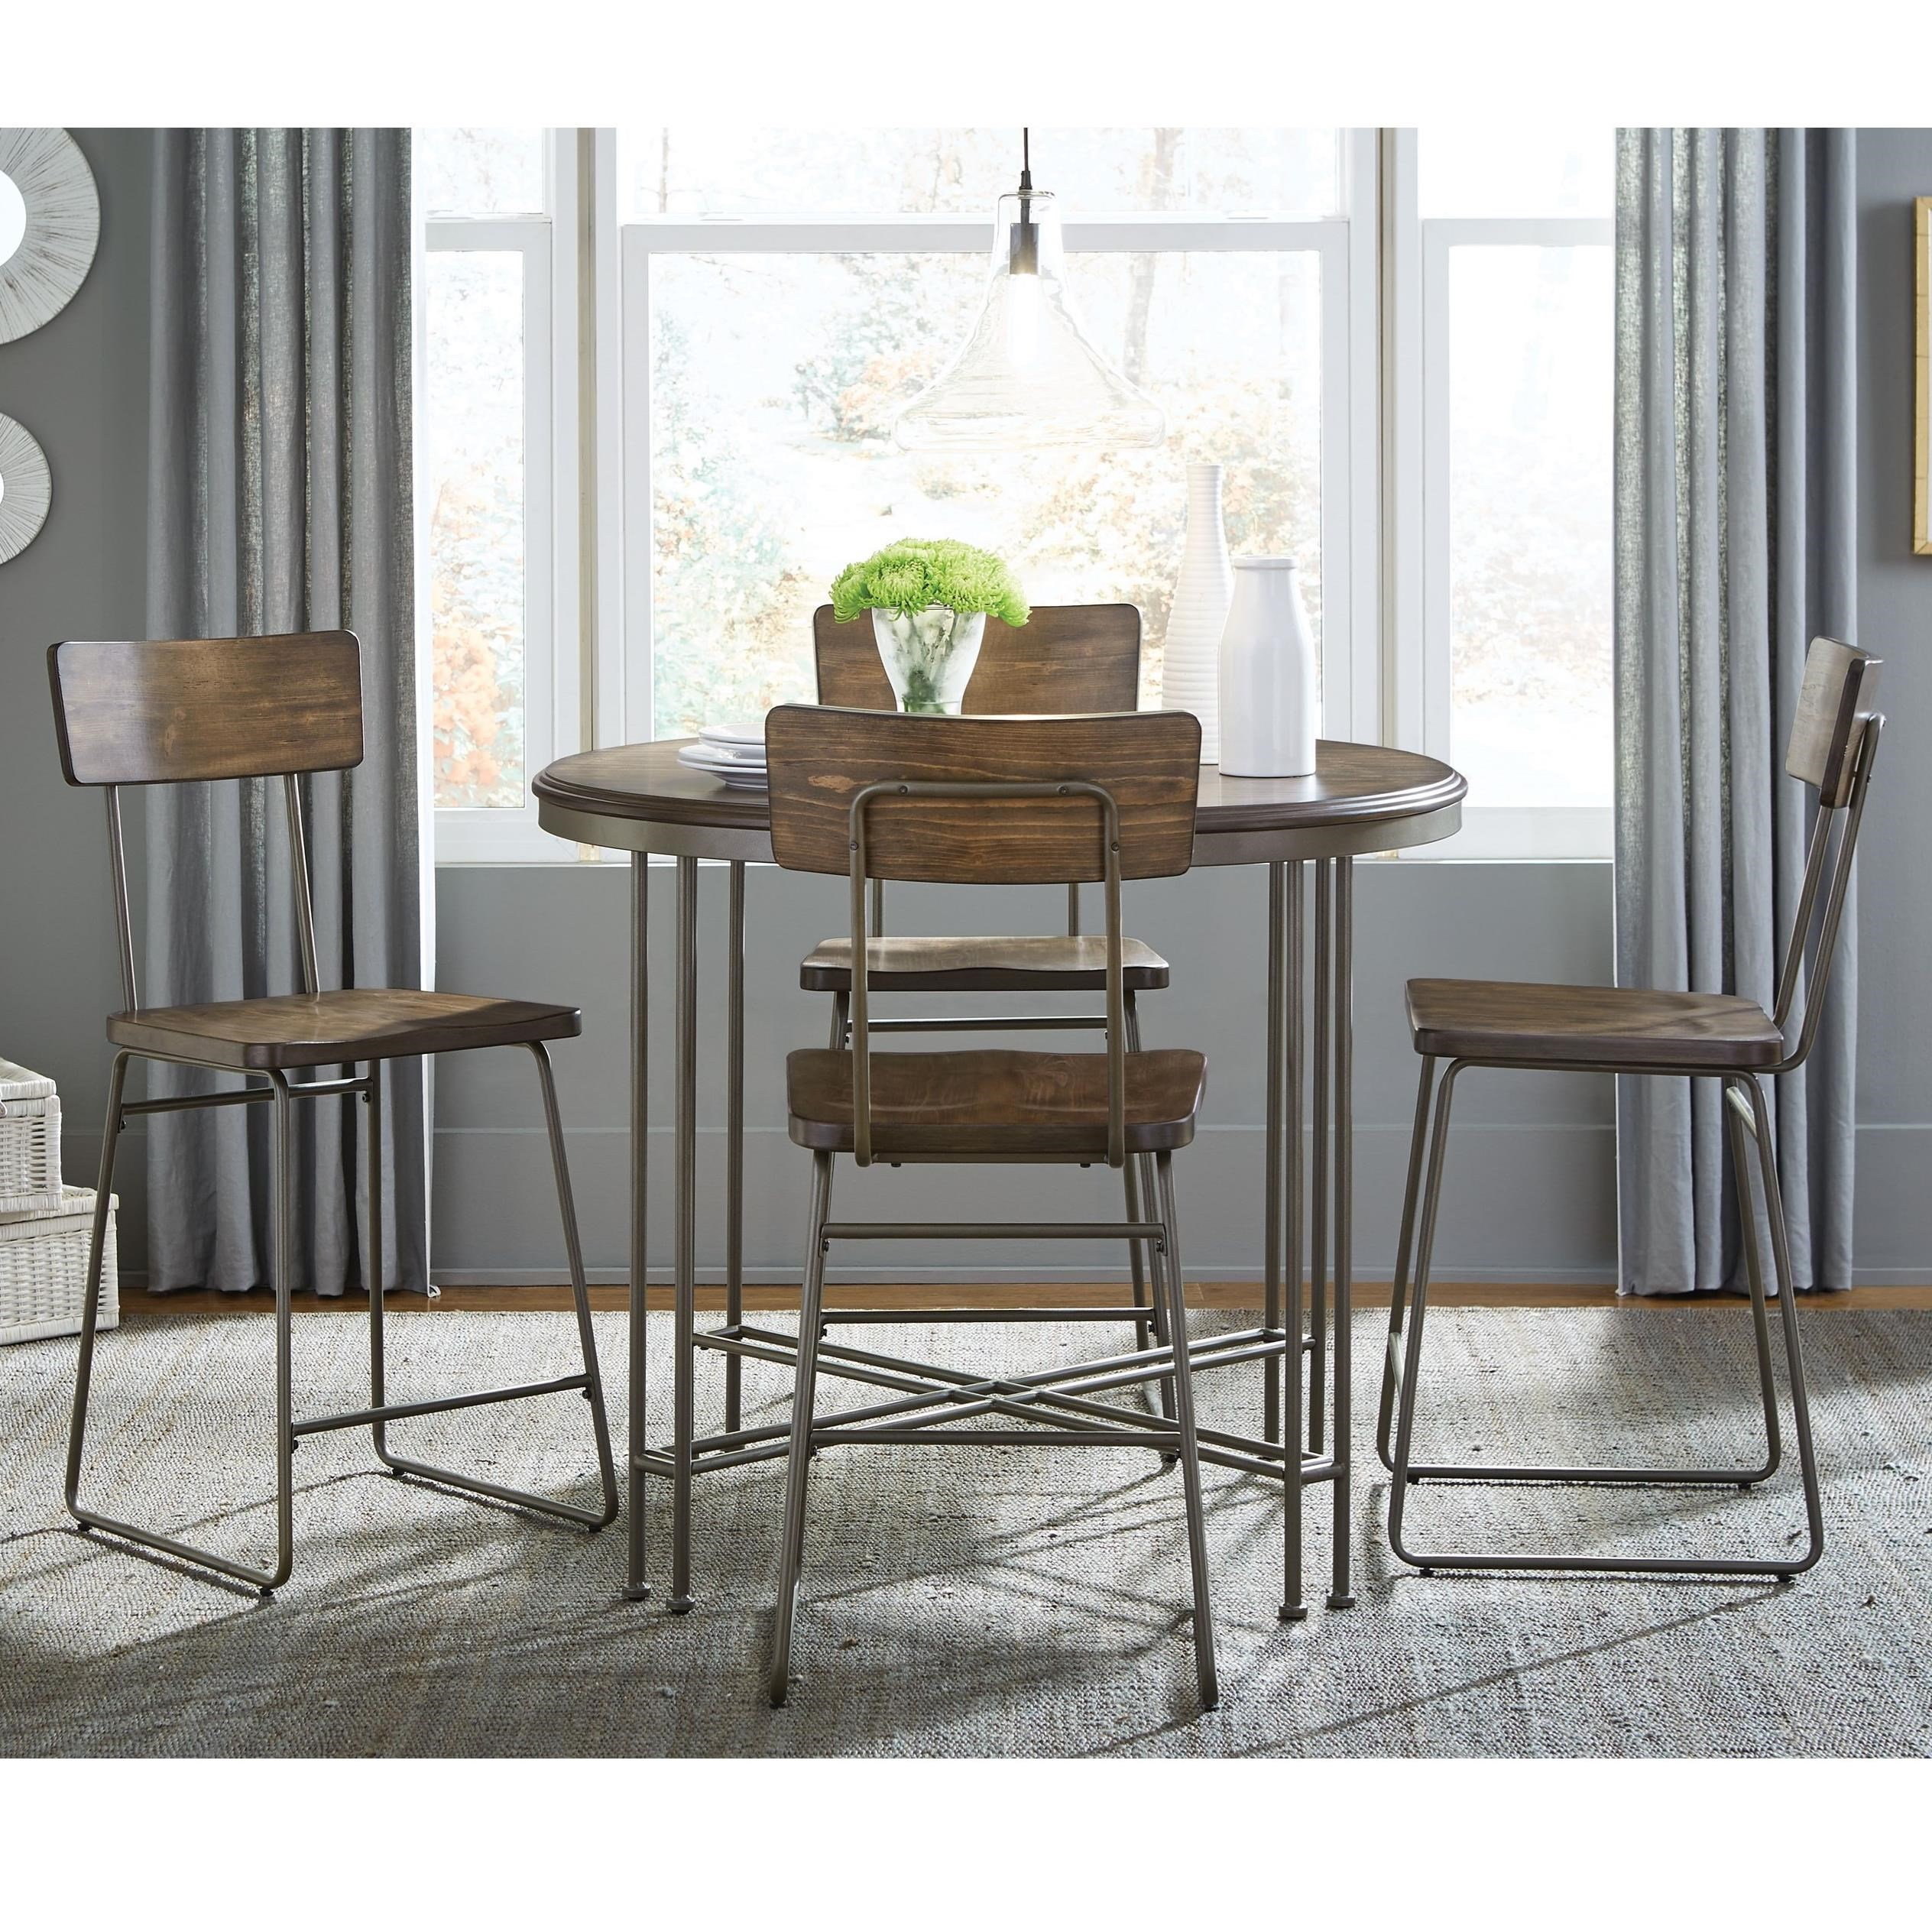 Elegant Standard Furniture Oslo Counter Height Table And Stool Set   Item Number:  11601+4x11604